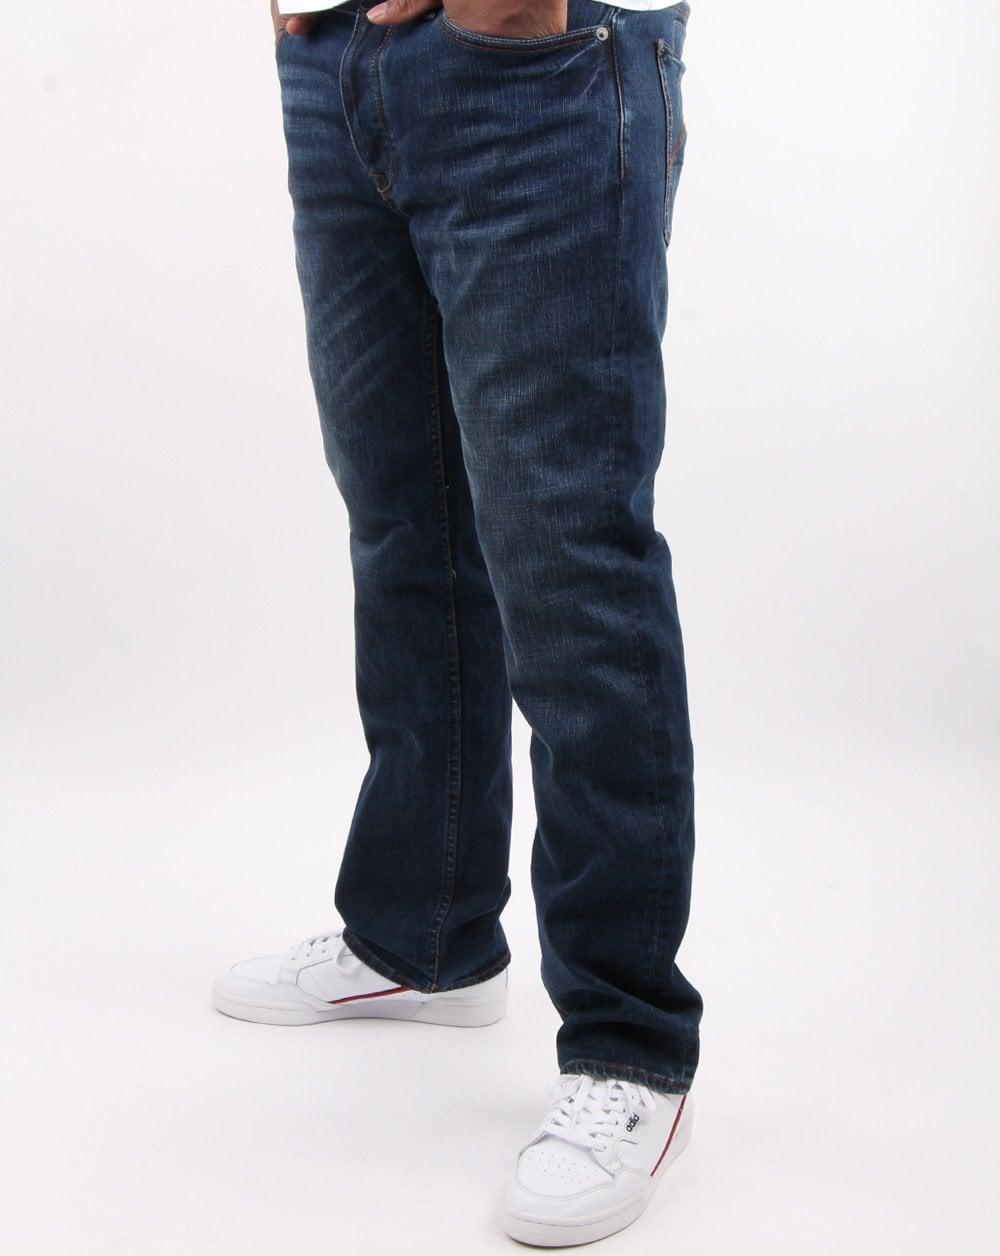 6 Month Wash Pretty Green Jeans Burnage Straight Fit Denim